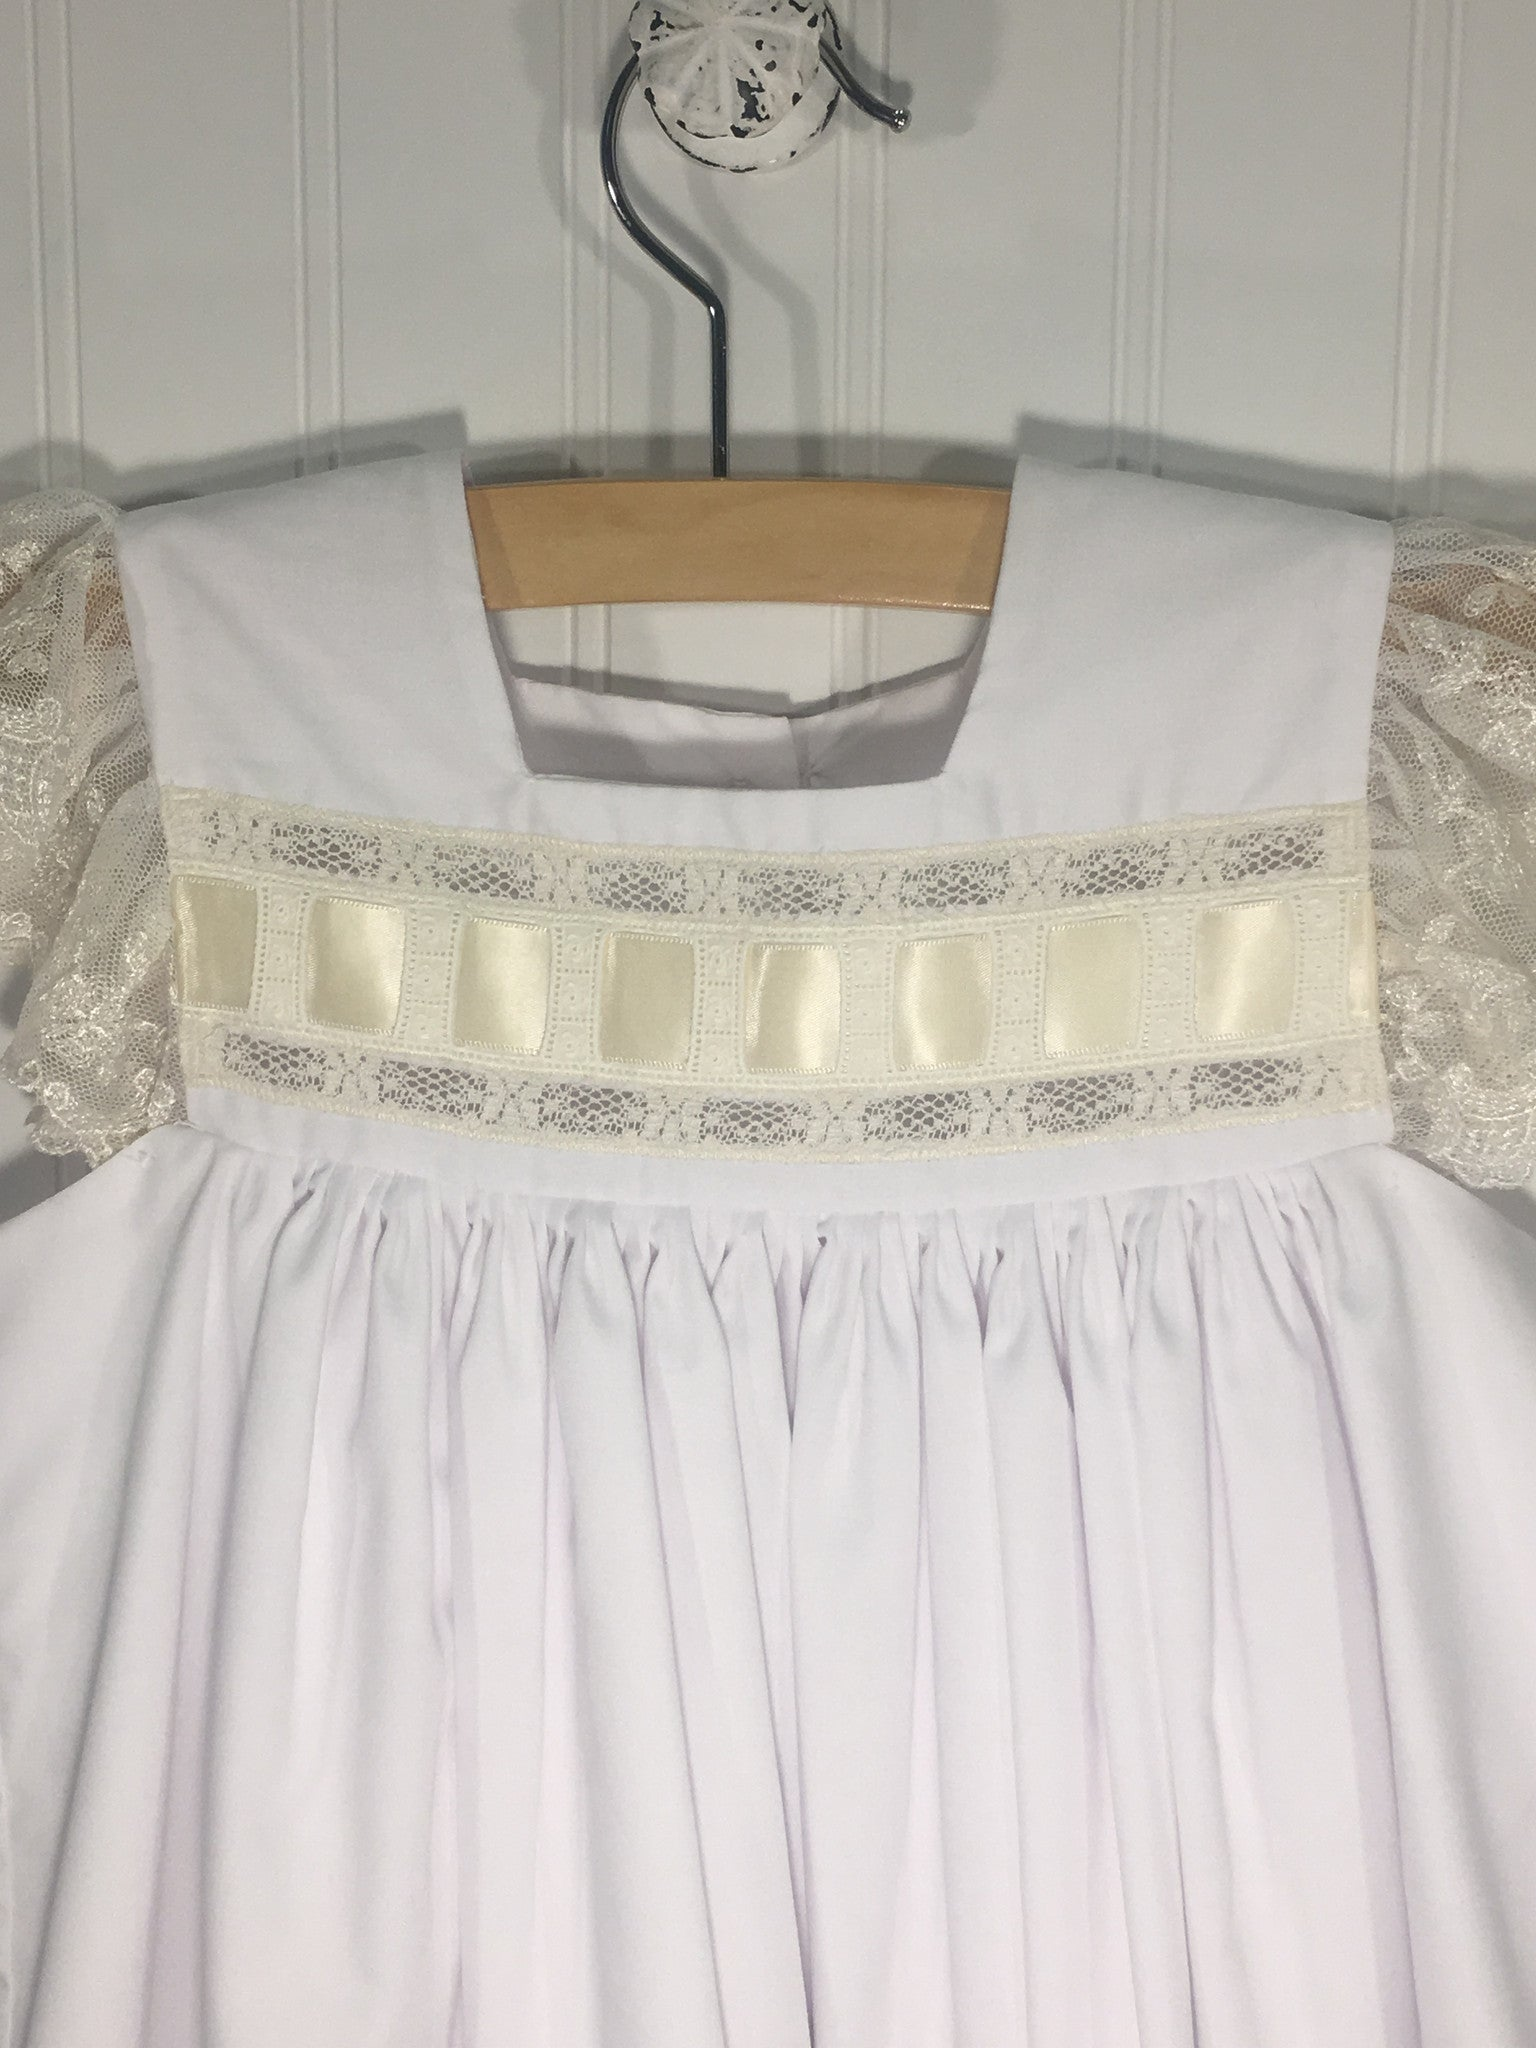 Heirloom Sleeveless Dress White with Ecru - Born Childrens Boutique  - 2